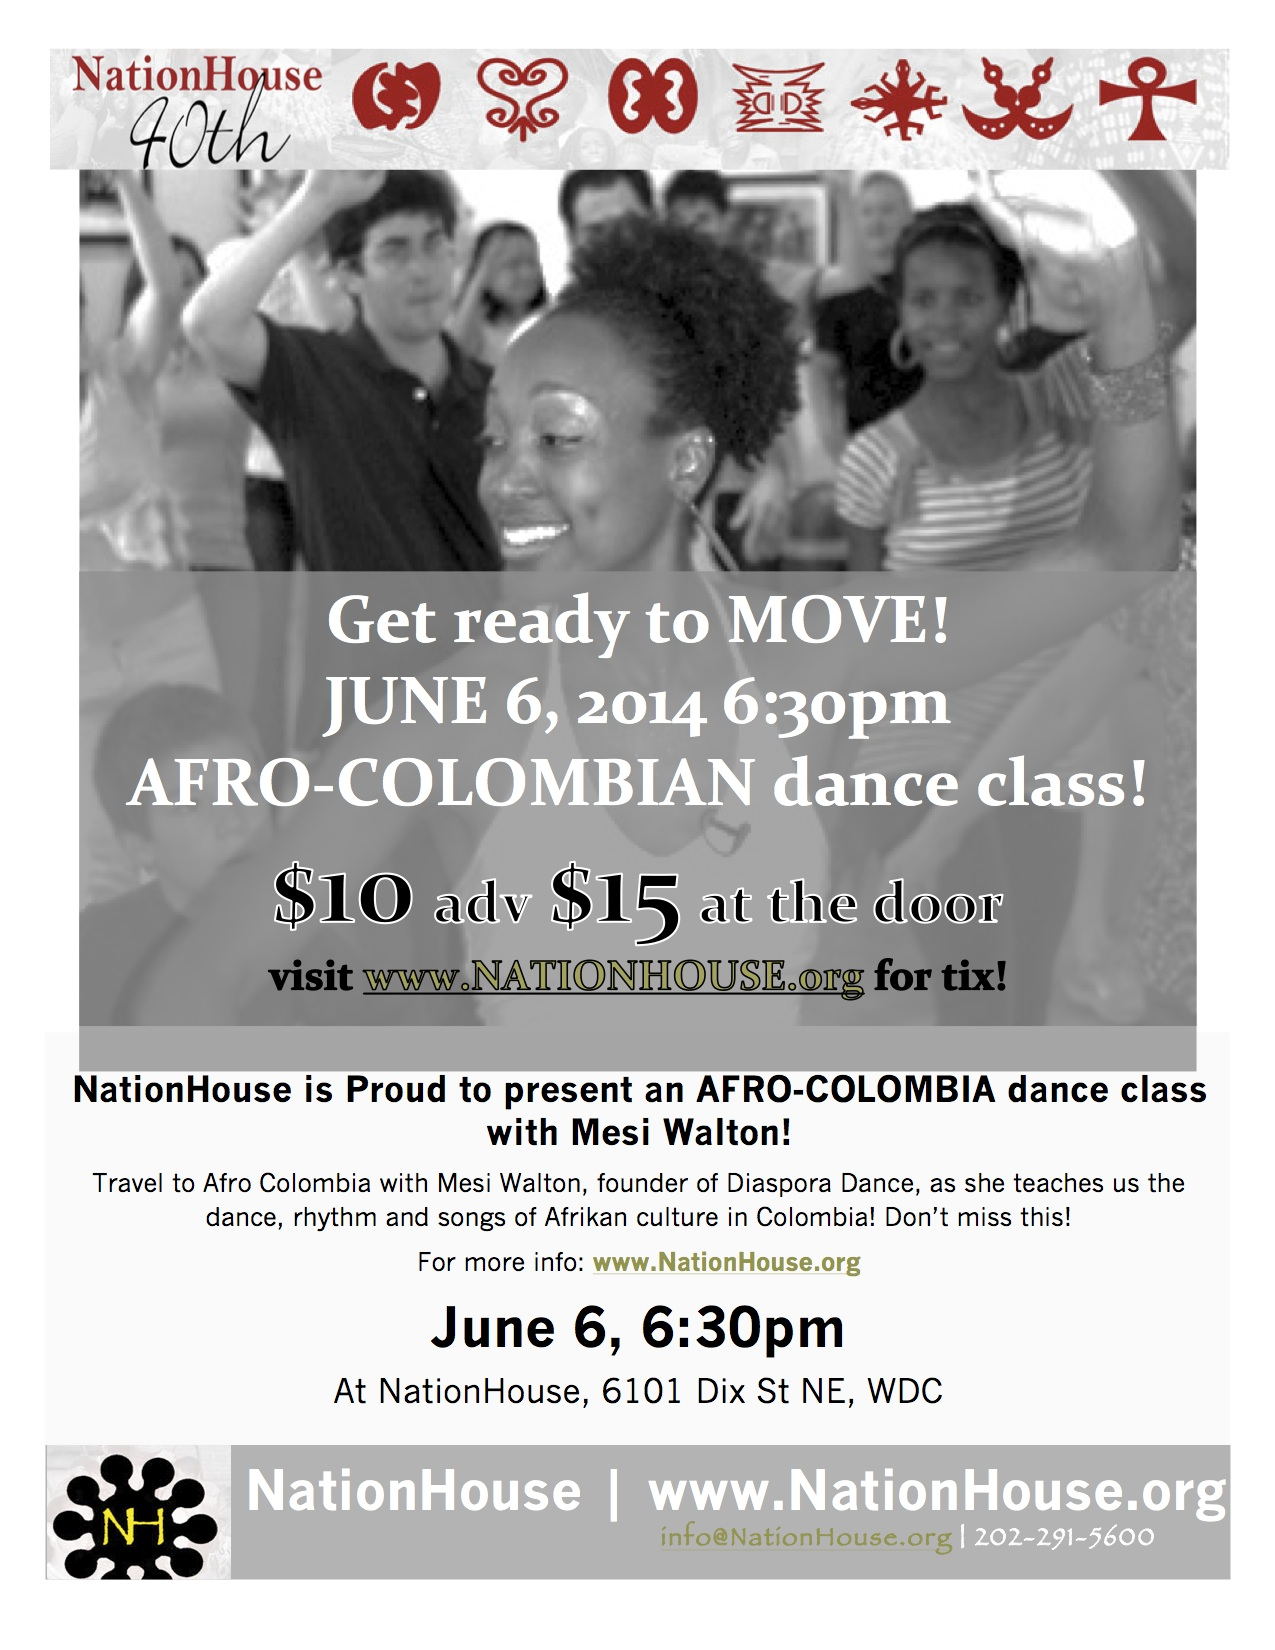 NationHouse Afro-Colombian dance 2014